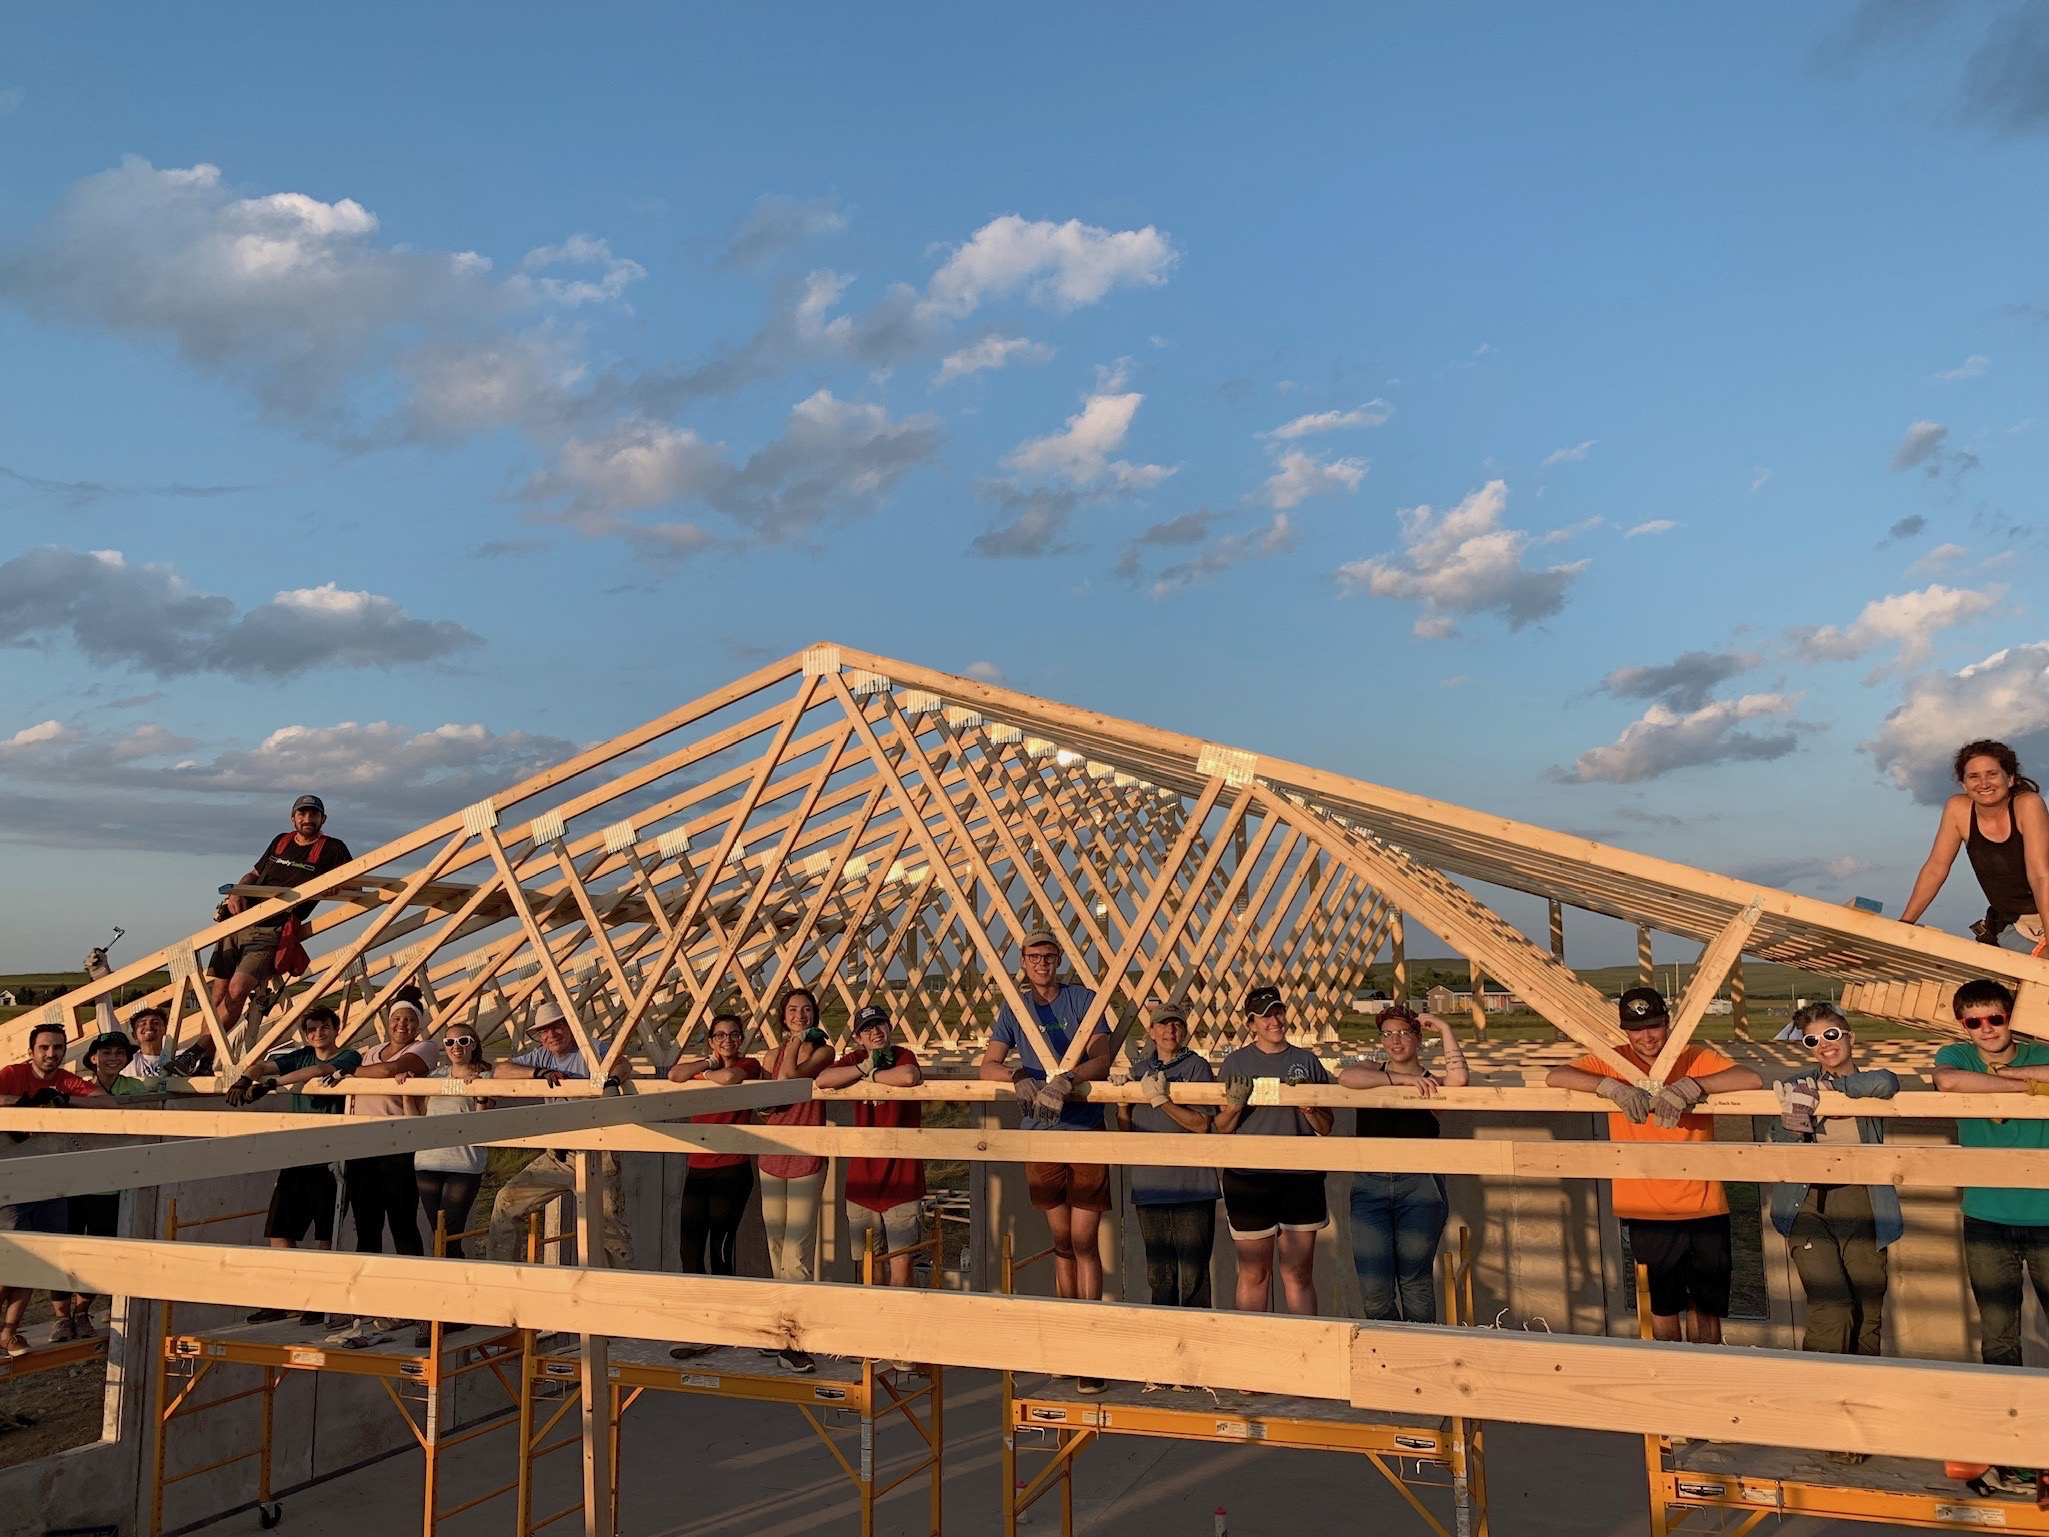 8/5/19: The first of the roof trusses are installed by amazing Simply Smiles volunteers and staff!